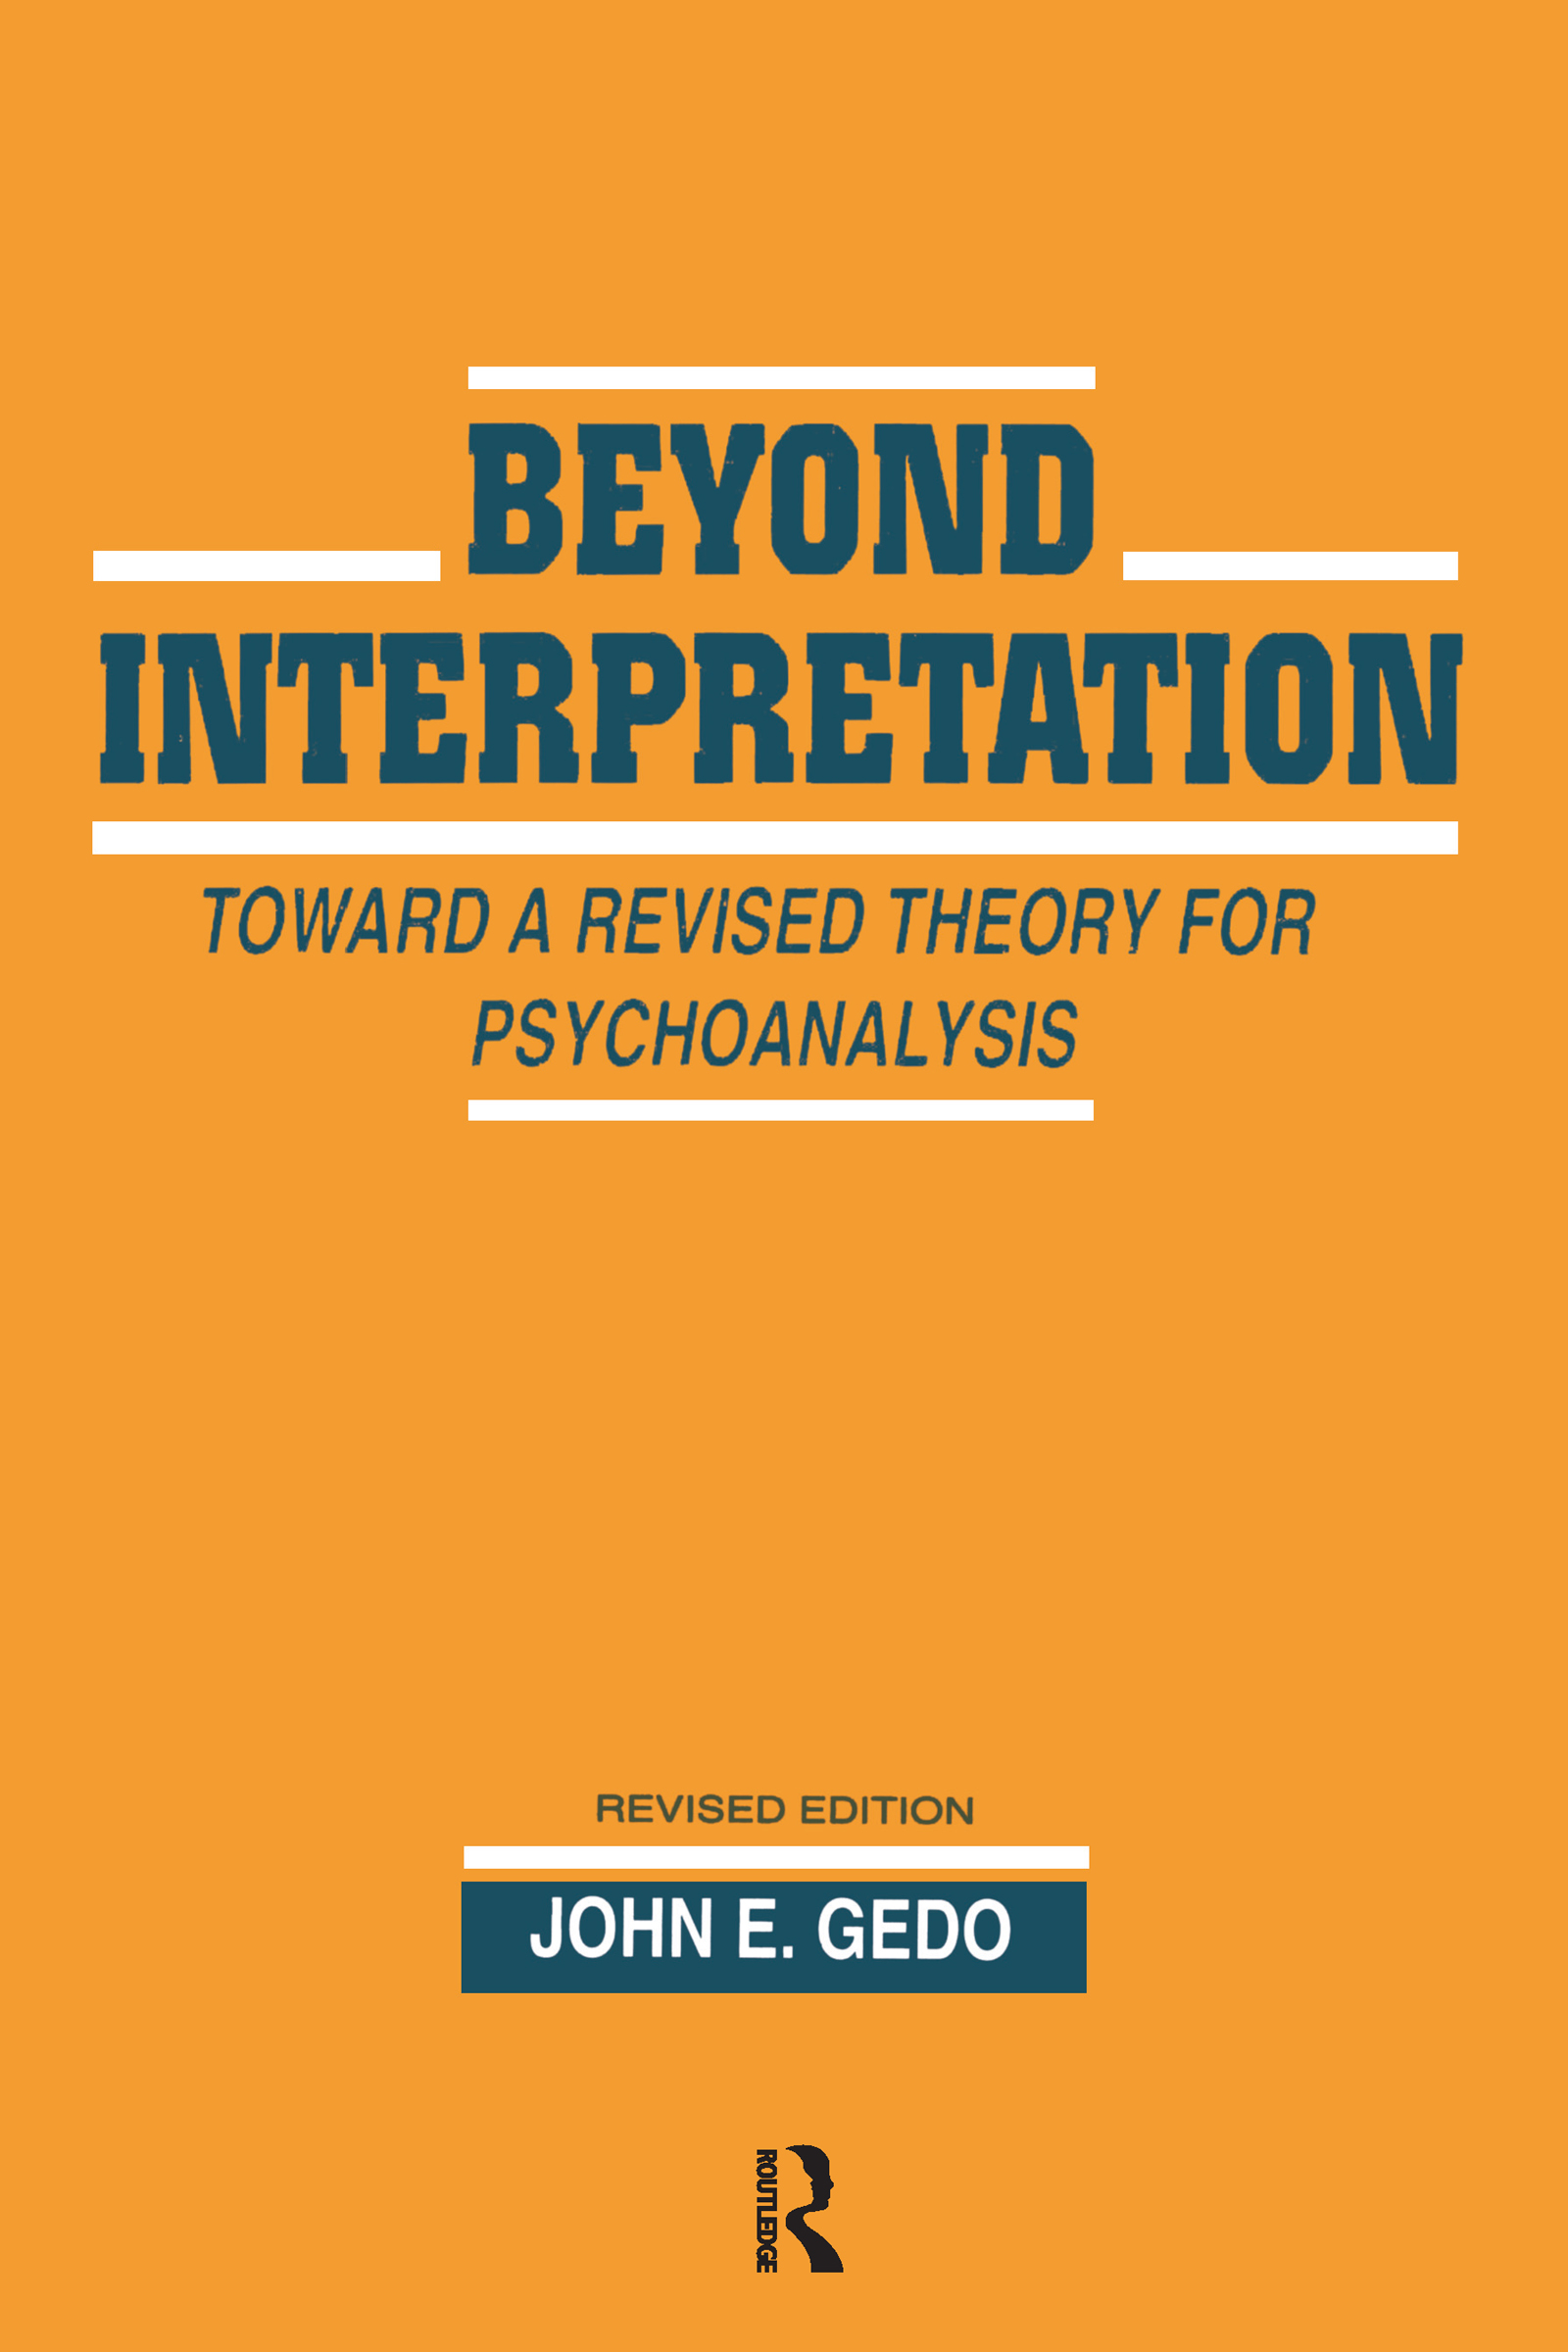 Beyond Interpretation: Toward a Revised Theory for Psychoanalysis (Paperback) book cover